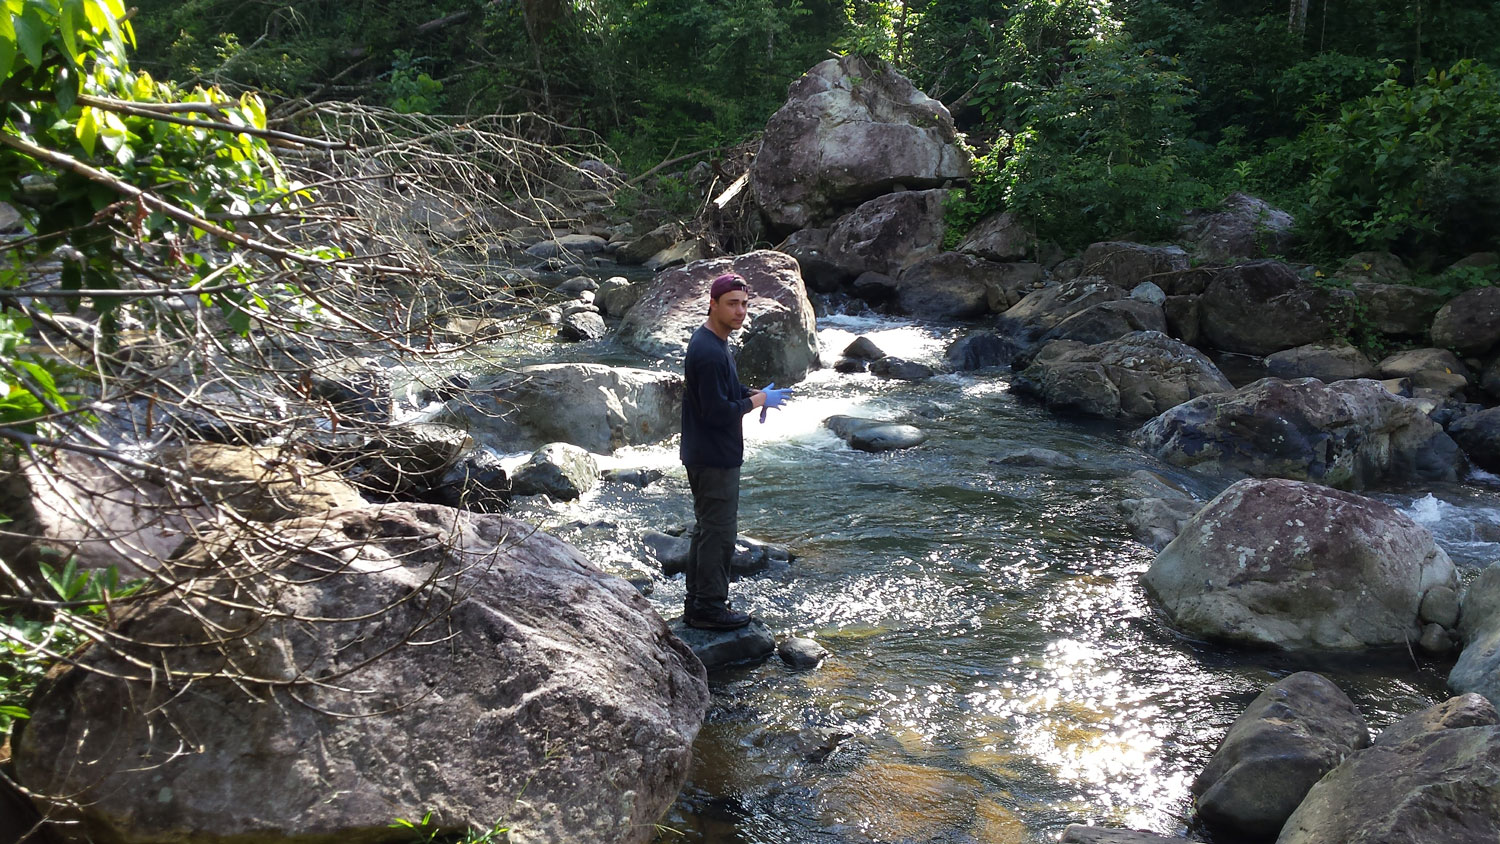 Civil engineering doctoral student Benjamin Davis takes water samples from the Rio Marin River in Patillas, Puerto Rico in early 2018.